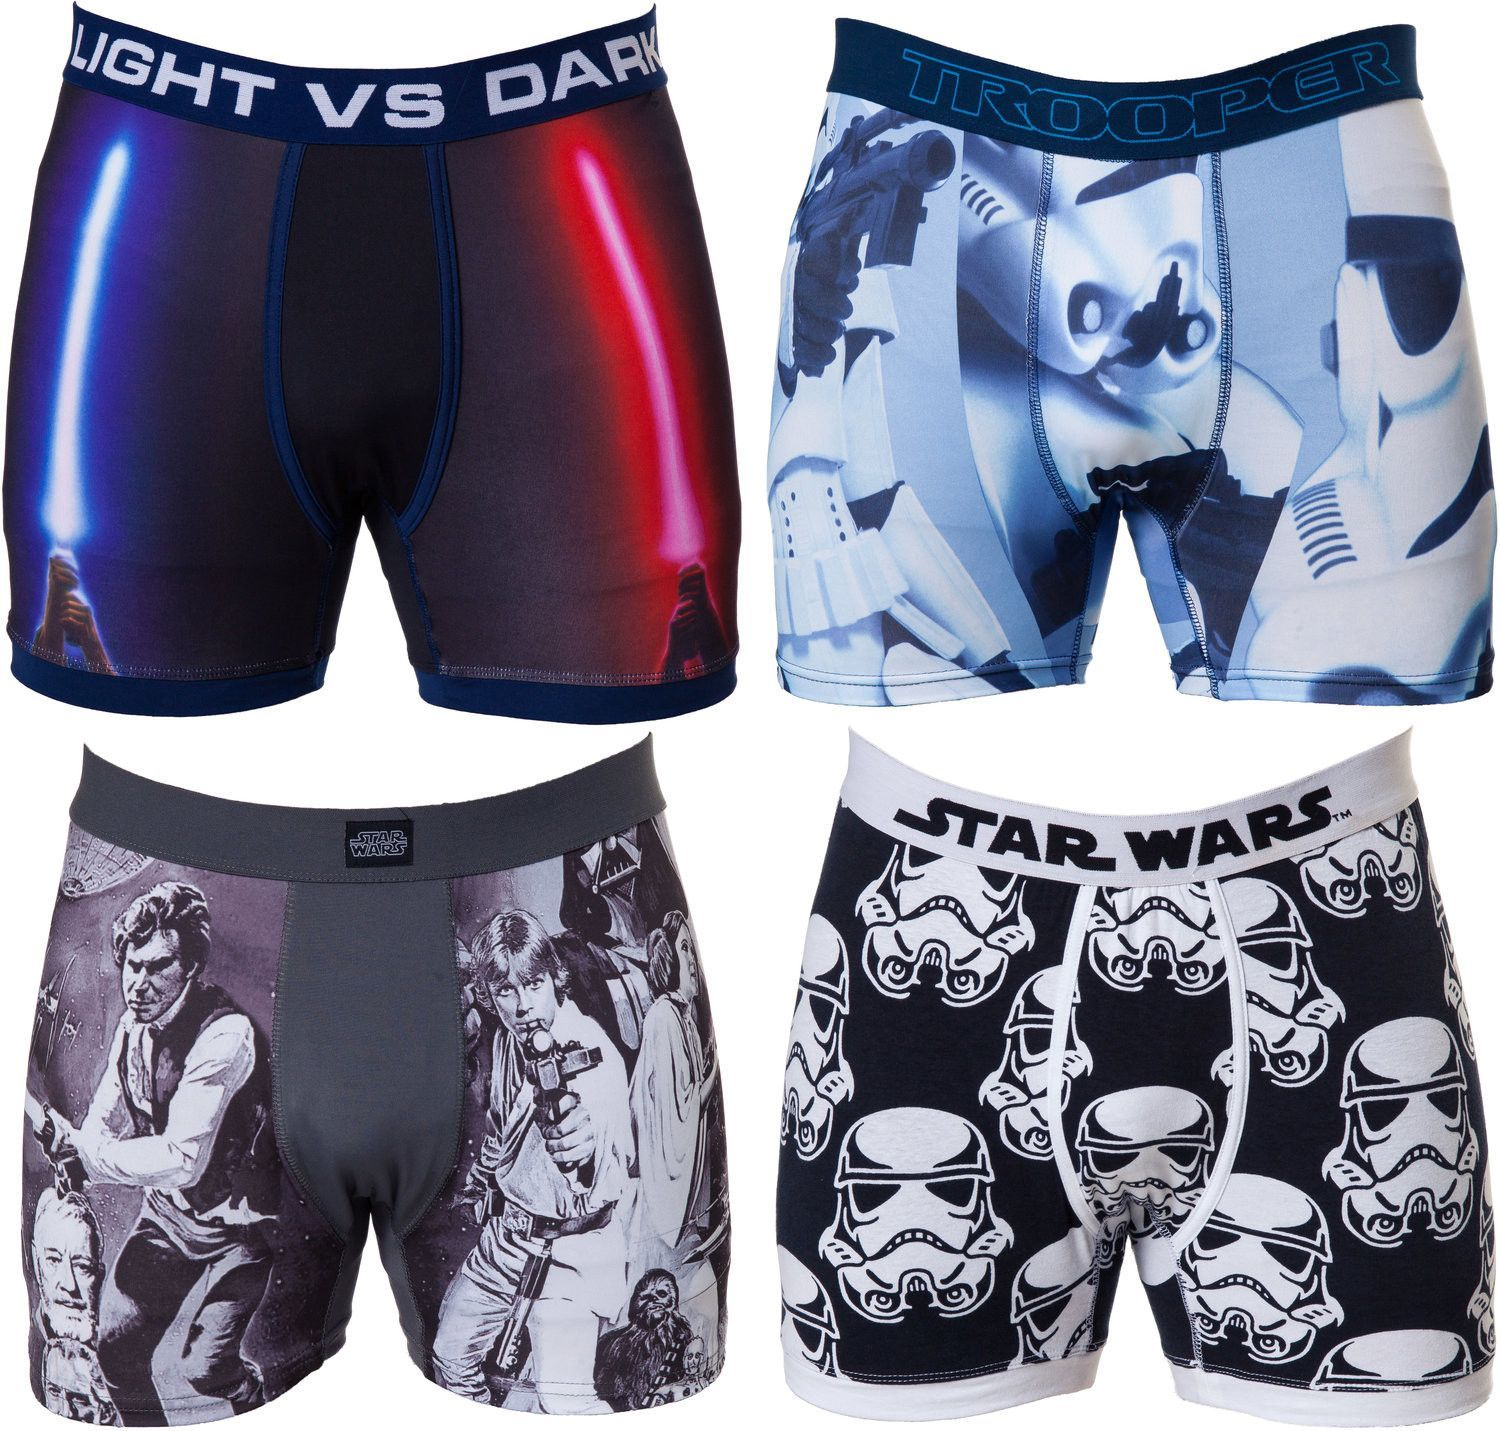 Star wars boxer brief set pinterest ropa intima for Boxer ropa interior